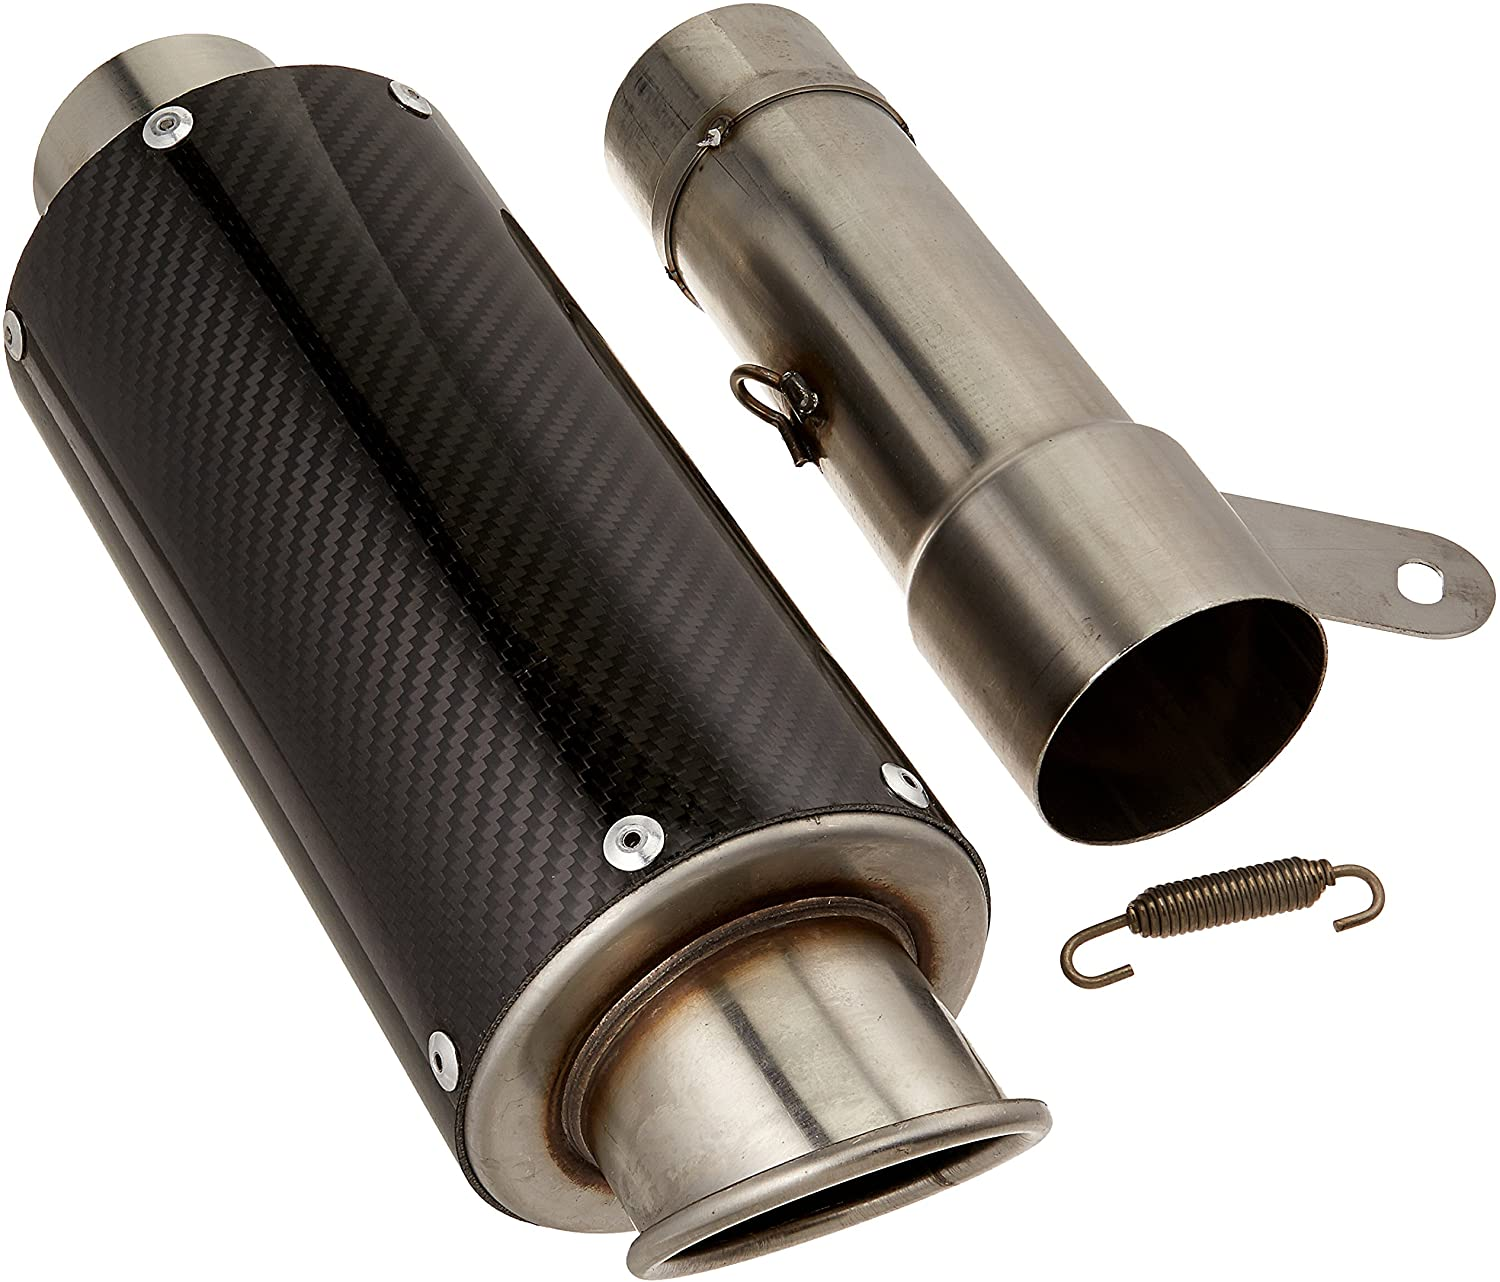 Hotbodies Racing 21001-2400 Carbon Fiber Slip-On MGP Exhaust Canister